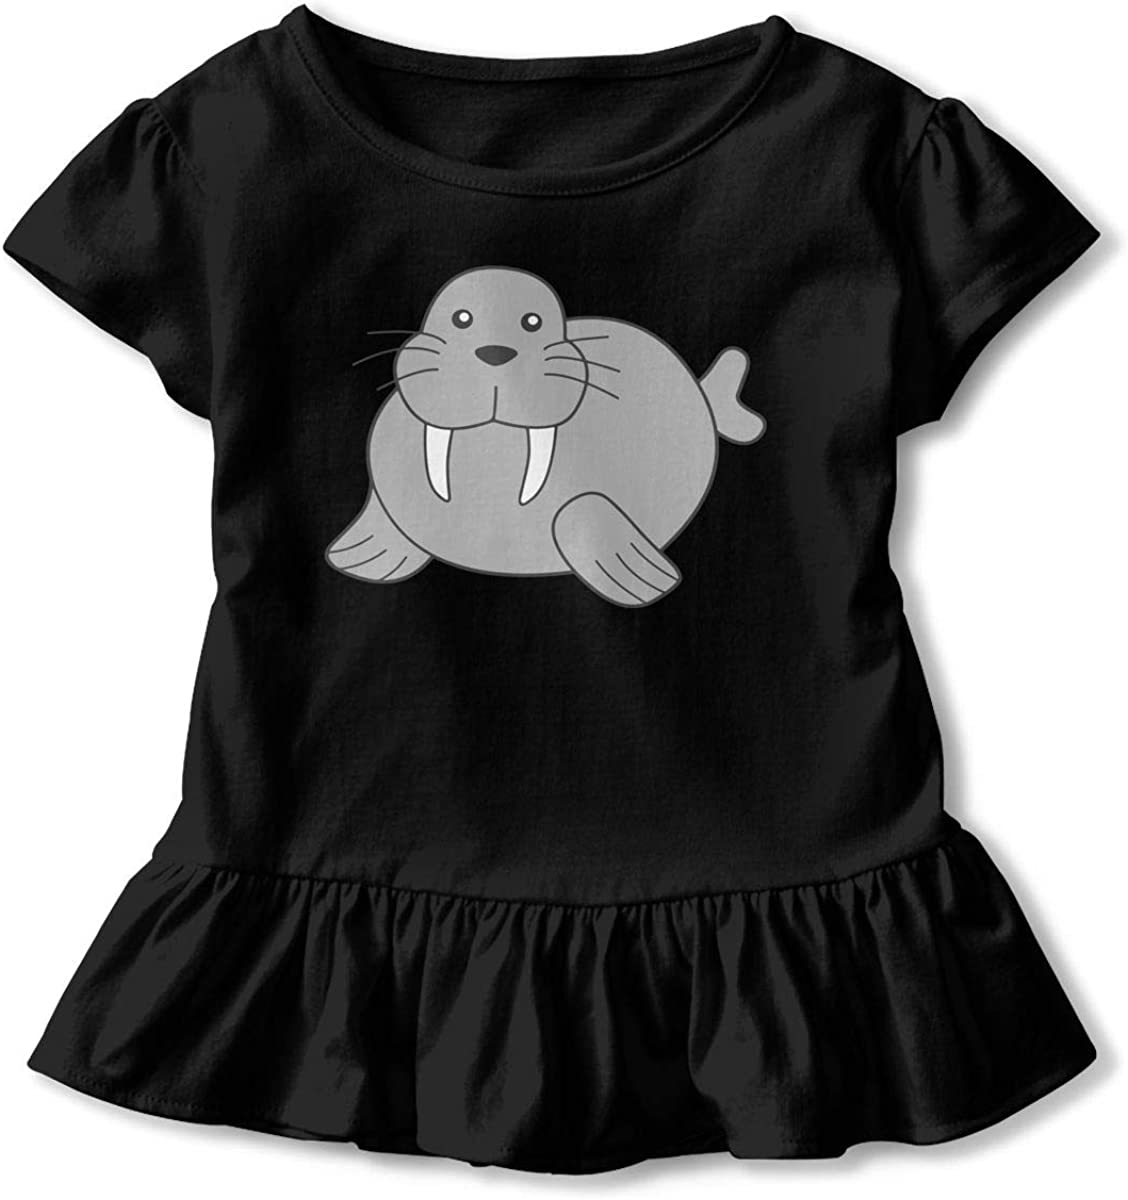 HYBDX9T Toddler Baby Girl Cute Cartoon Manatee Funny Short Sleeve Cotton T Shirts Basic Tops Tee Clothes